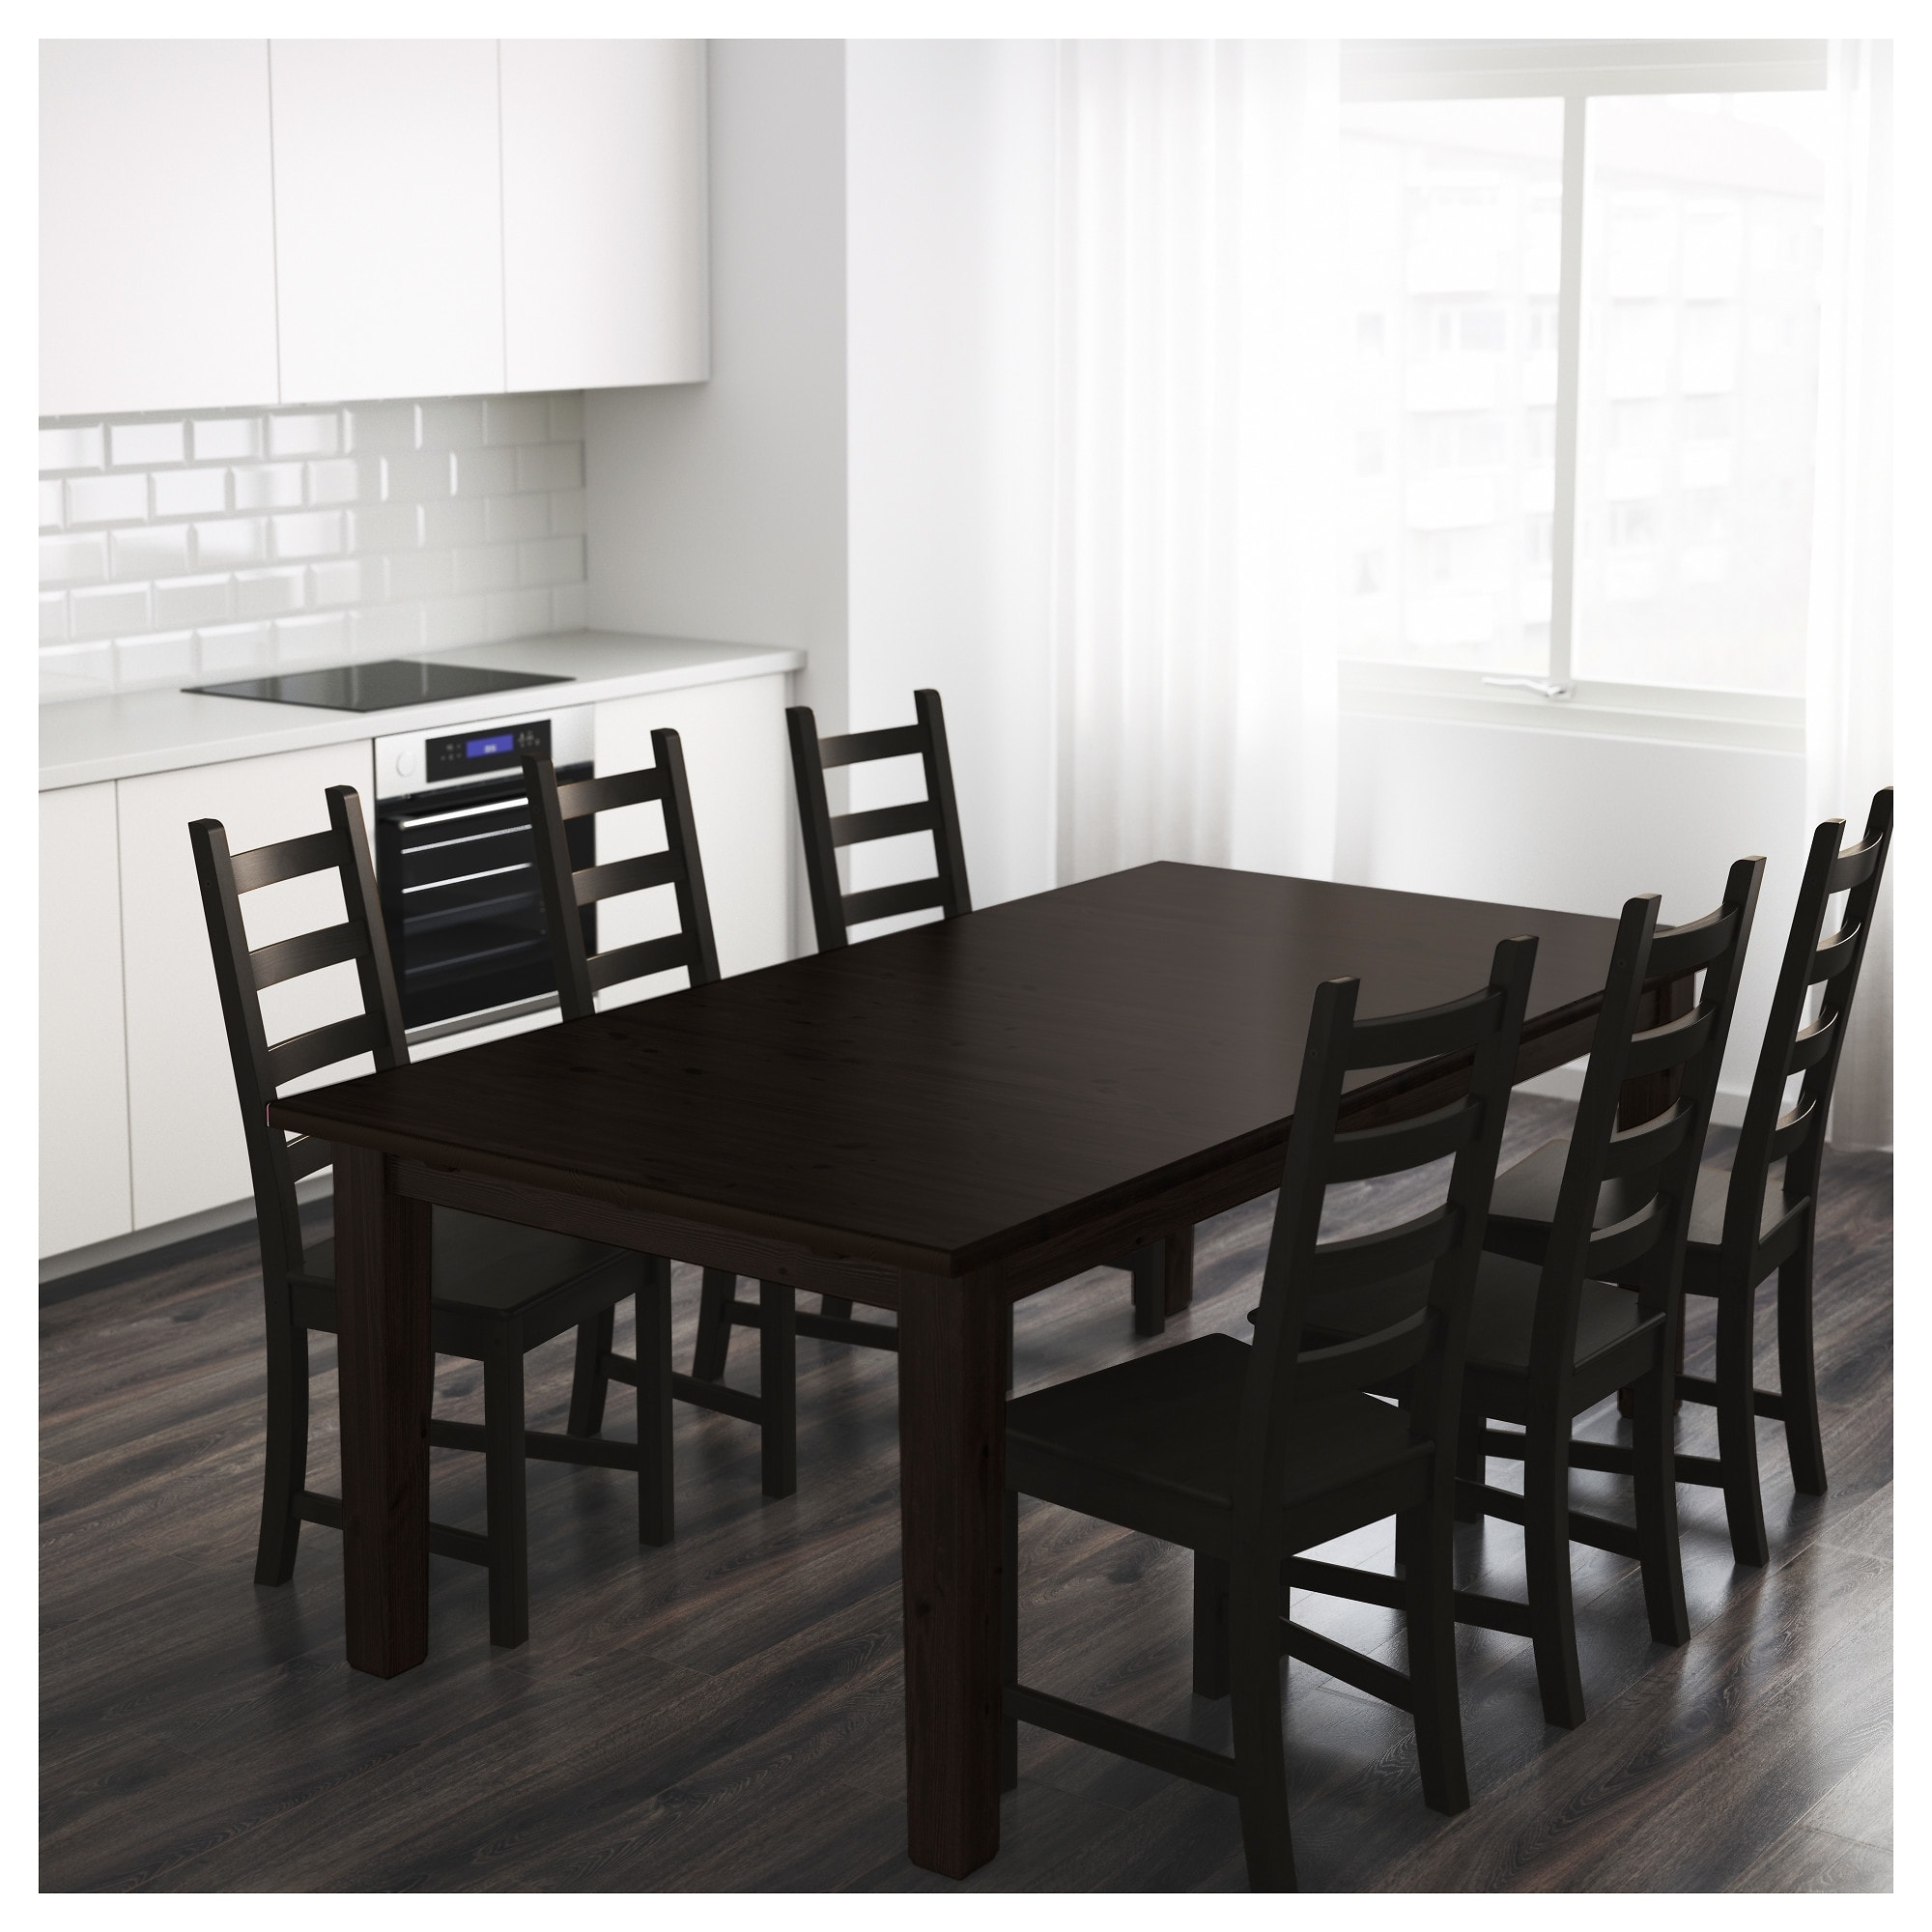 Ikea Round Dining Tables Set With Most Up To Date Stornäs Extendable Table – Ikea (View 13 of 25)